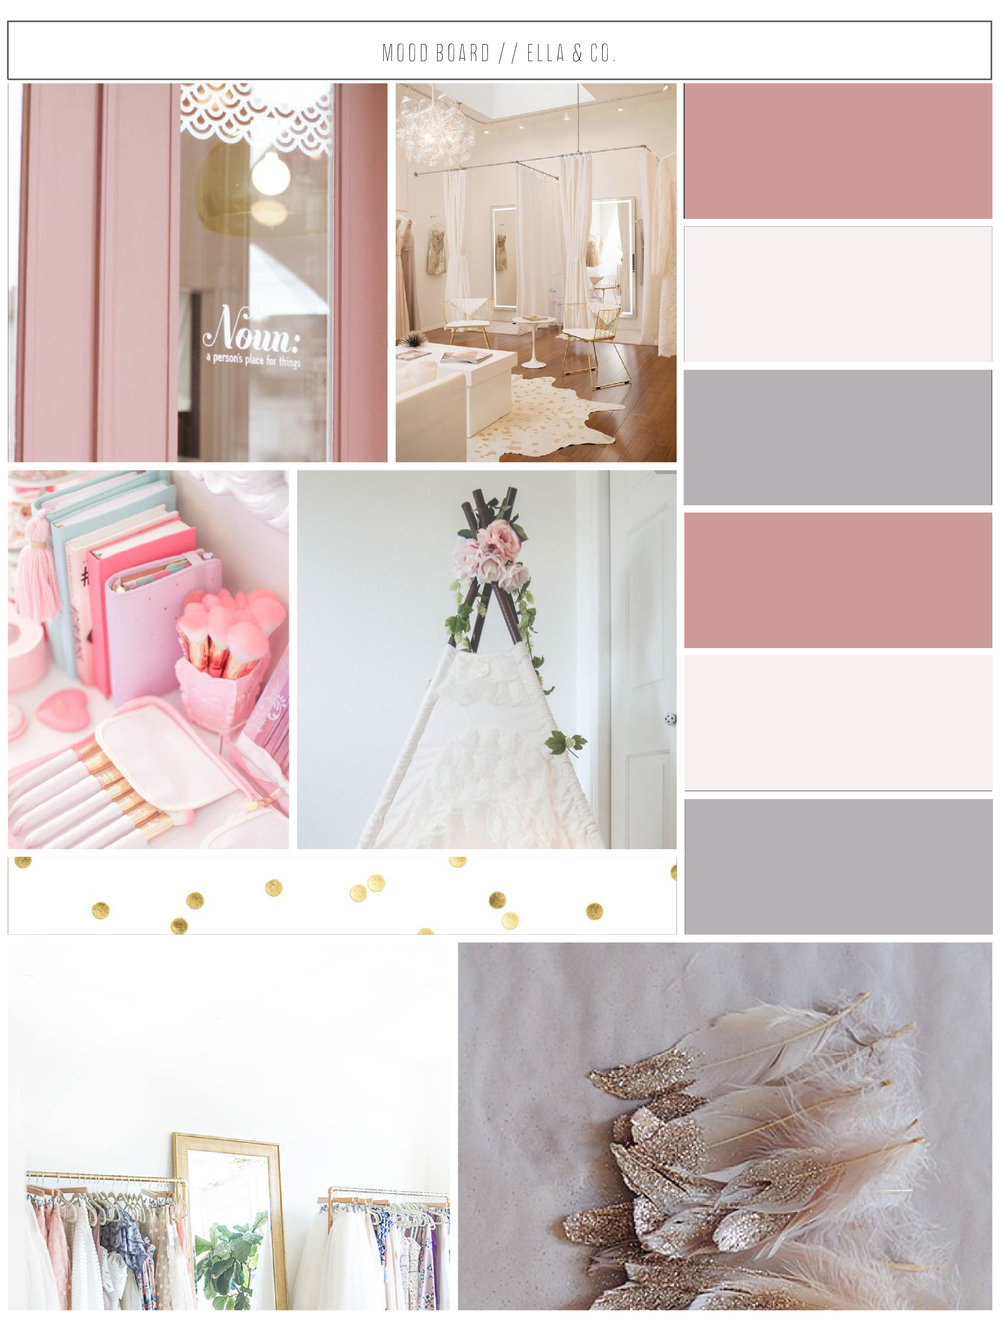 Ella & Co. Mood Board